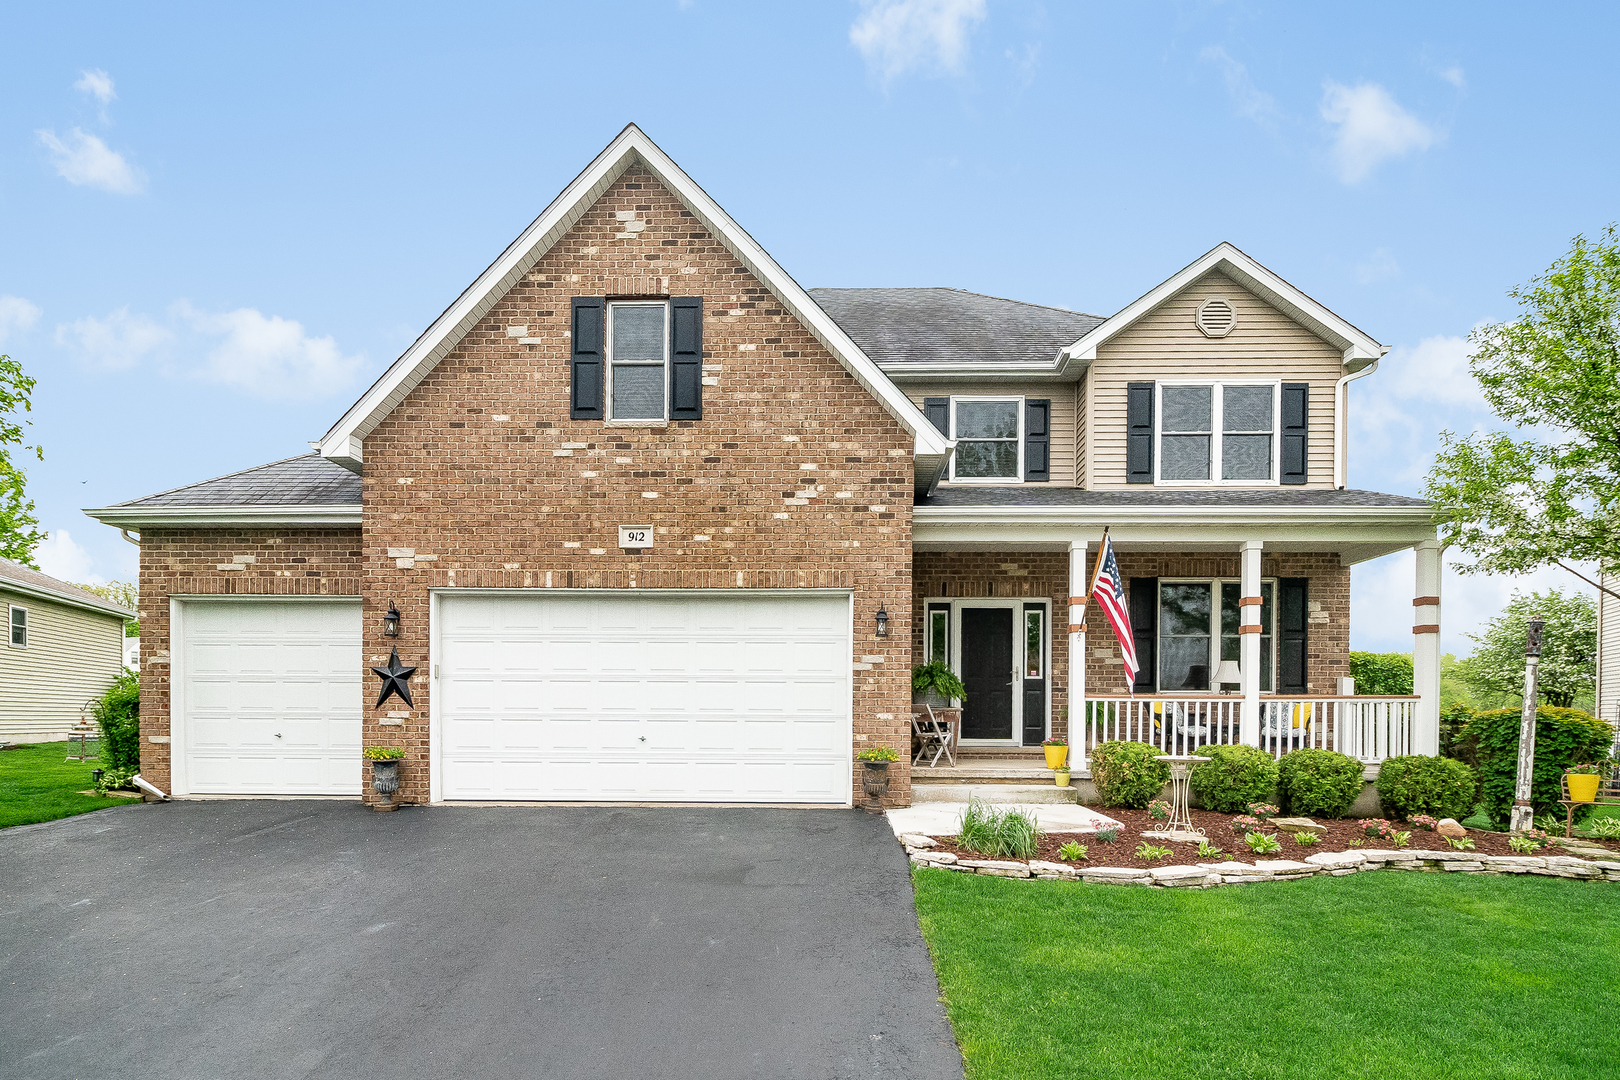 Photo for 912 Wells Drive, Sycamore, IL 60178 (MLS # 10720035)